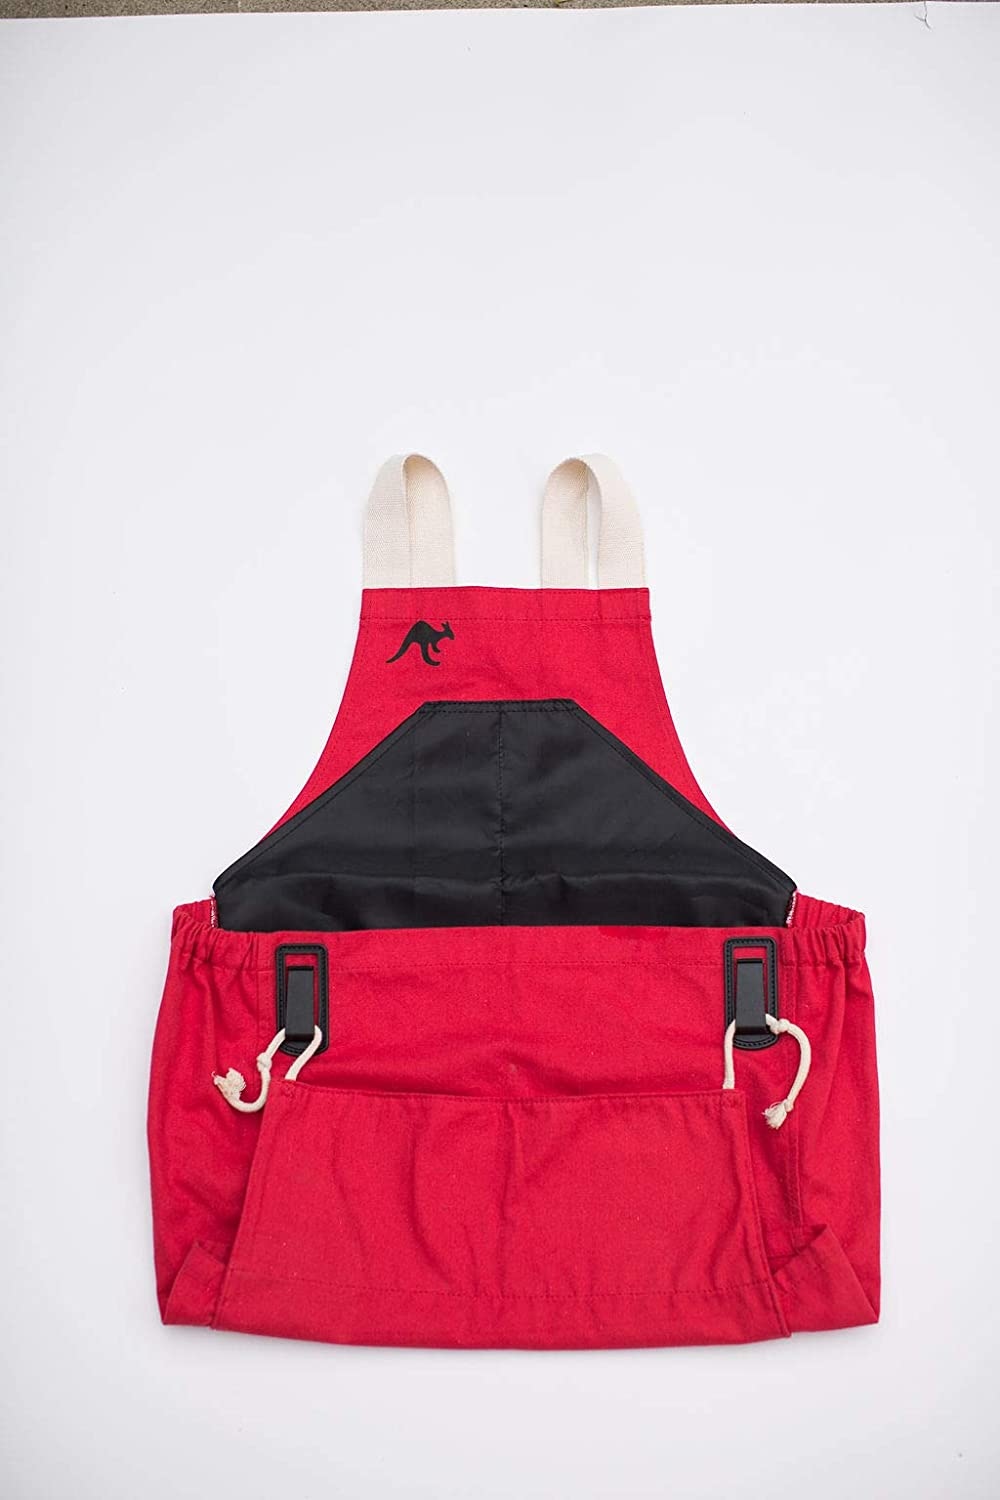 Roo Garden Apron Storage Pockets and Canvas Collection Pouch Red Womens One Size Fits All Cotton Canvas Garden Kitchen and Harvest Smock with Bib Machine Washable